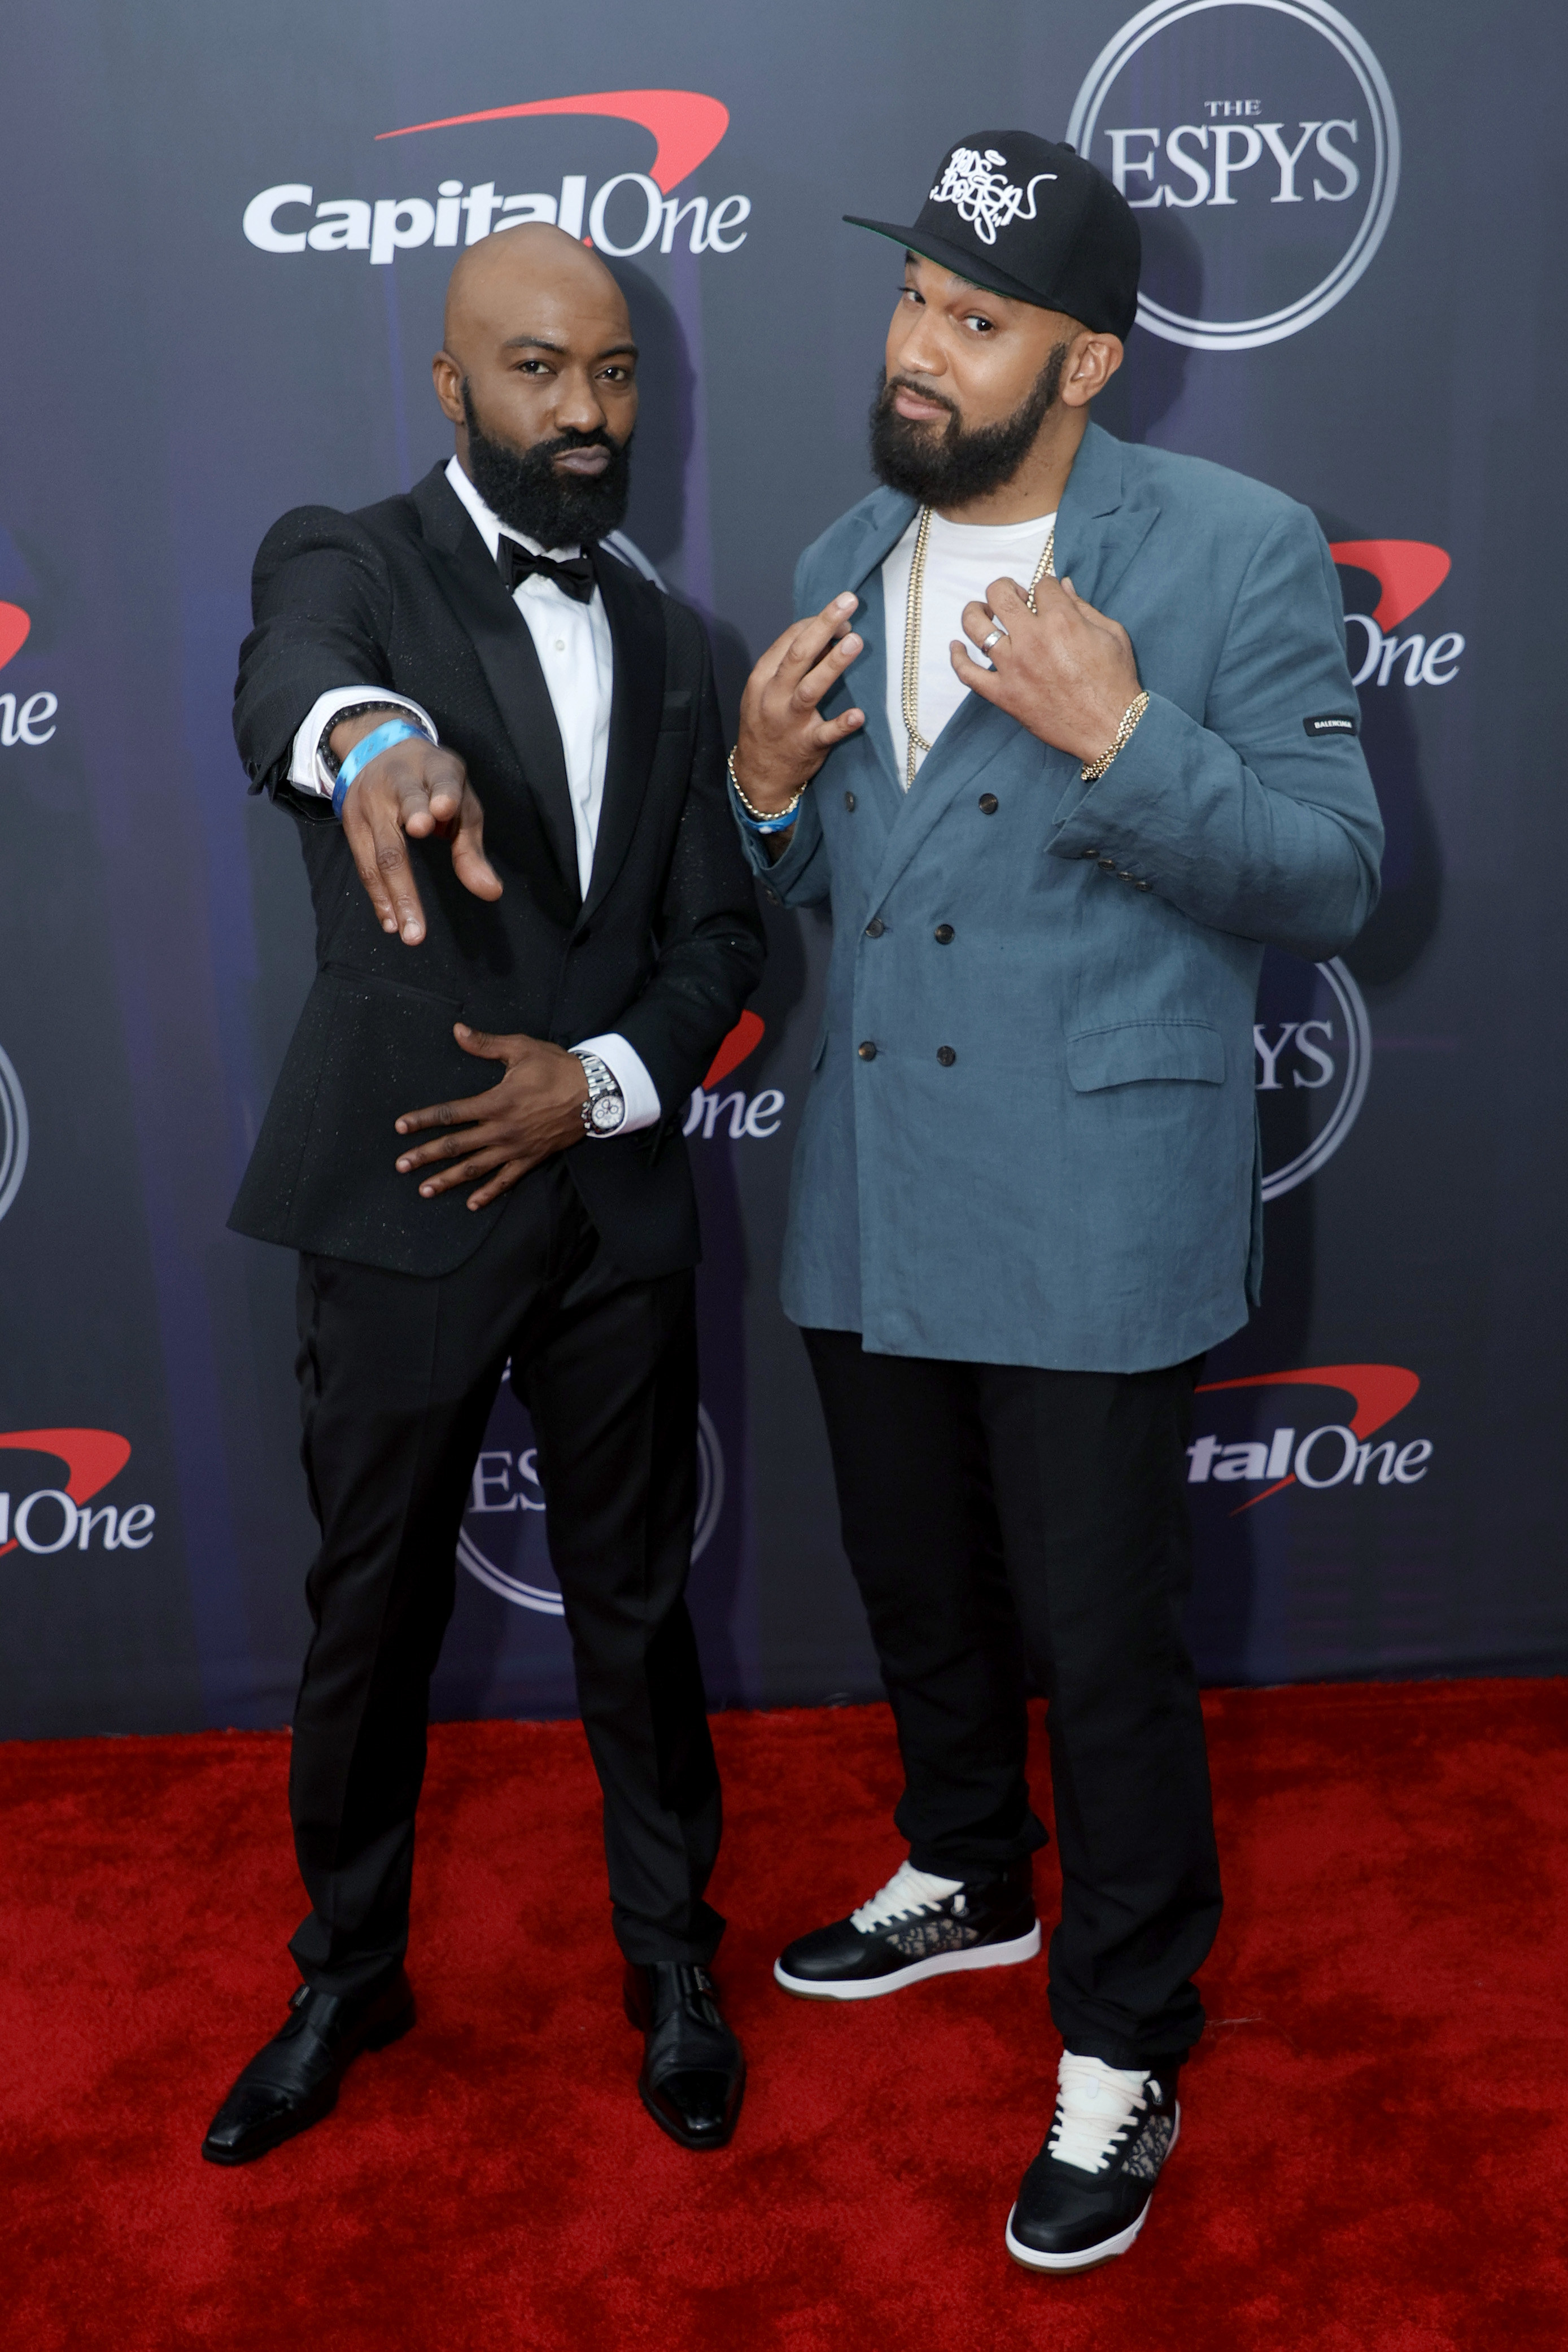 Desus wore a tux and Mero wore a blazer, tee-shirt, slacks, and sneakers